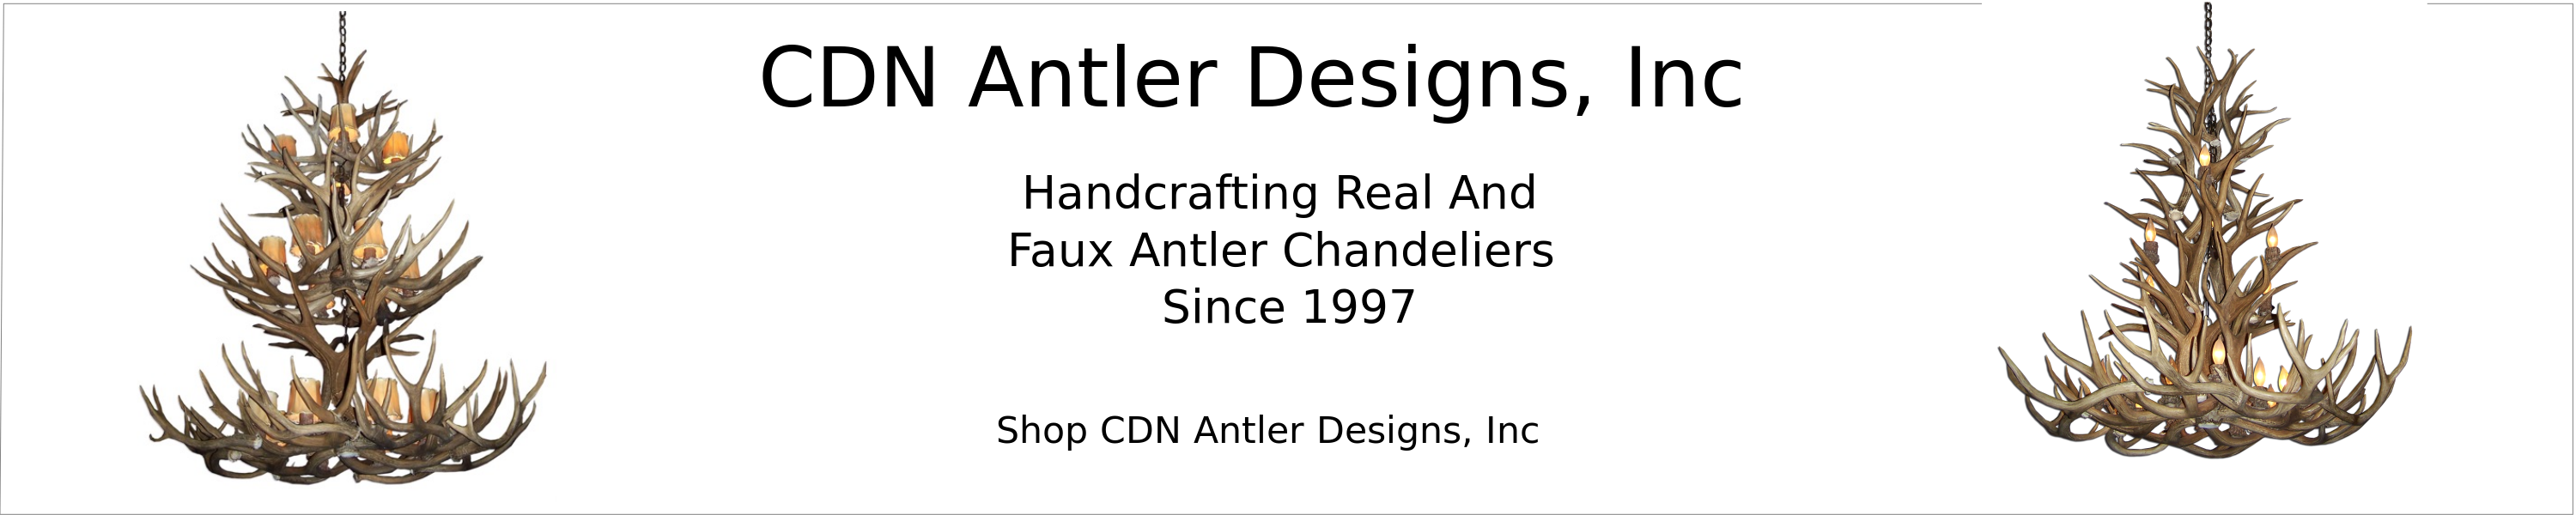 Cdn Antler Designs coupons